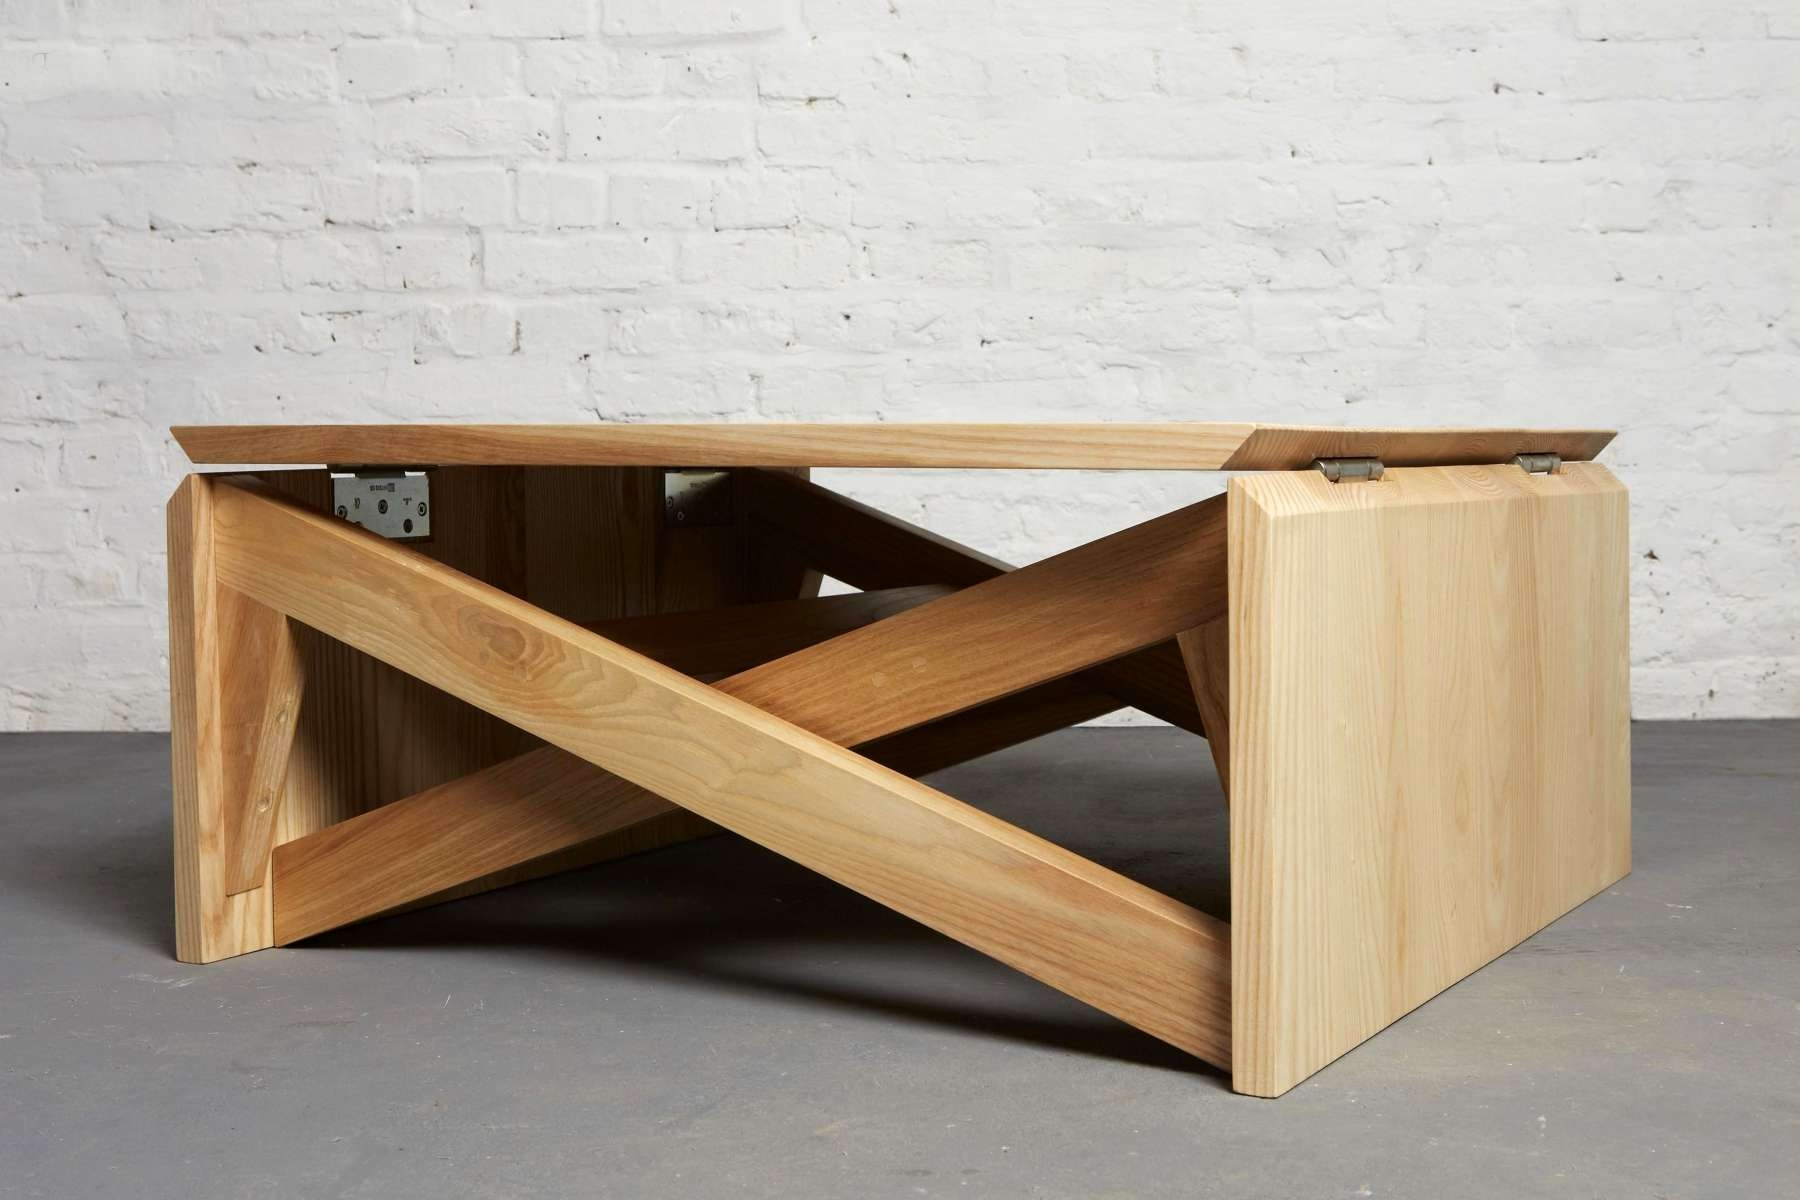 Endearing Coffee Table Transforms To Dining Table Also Classic Inside Famous Coffee Table To Dining Table (View 7 of 20)